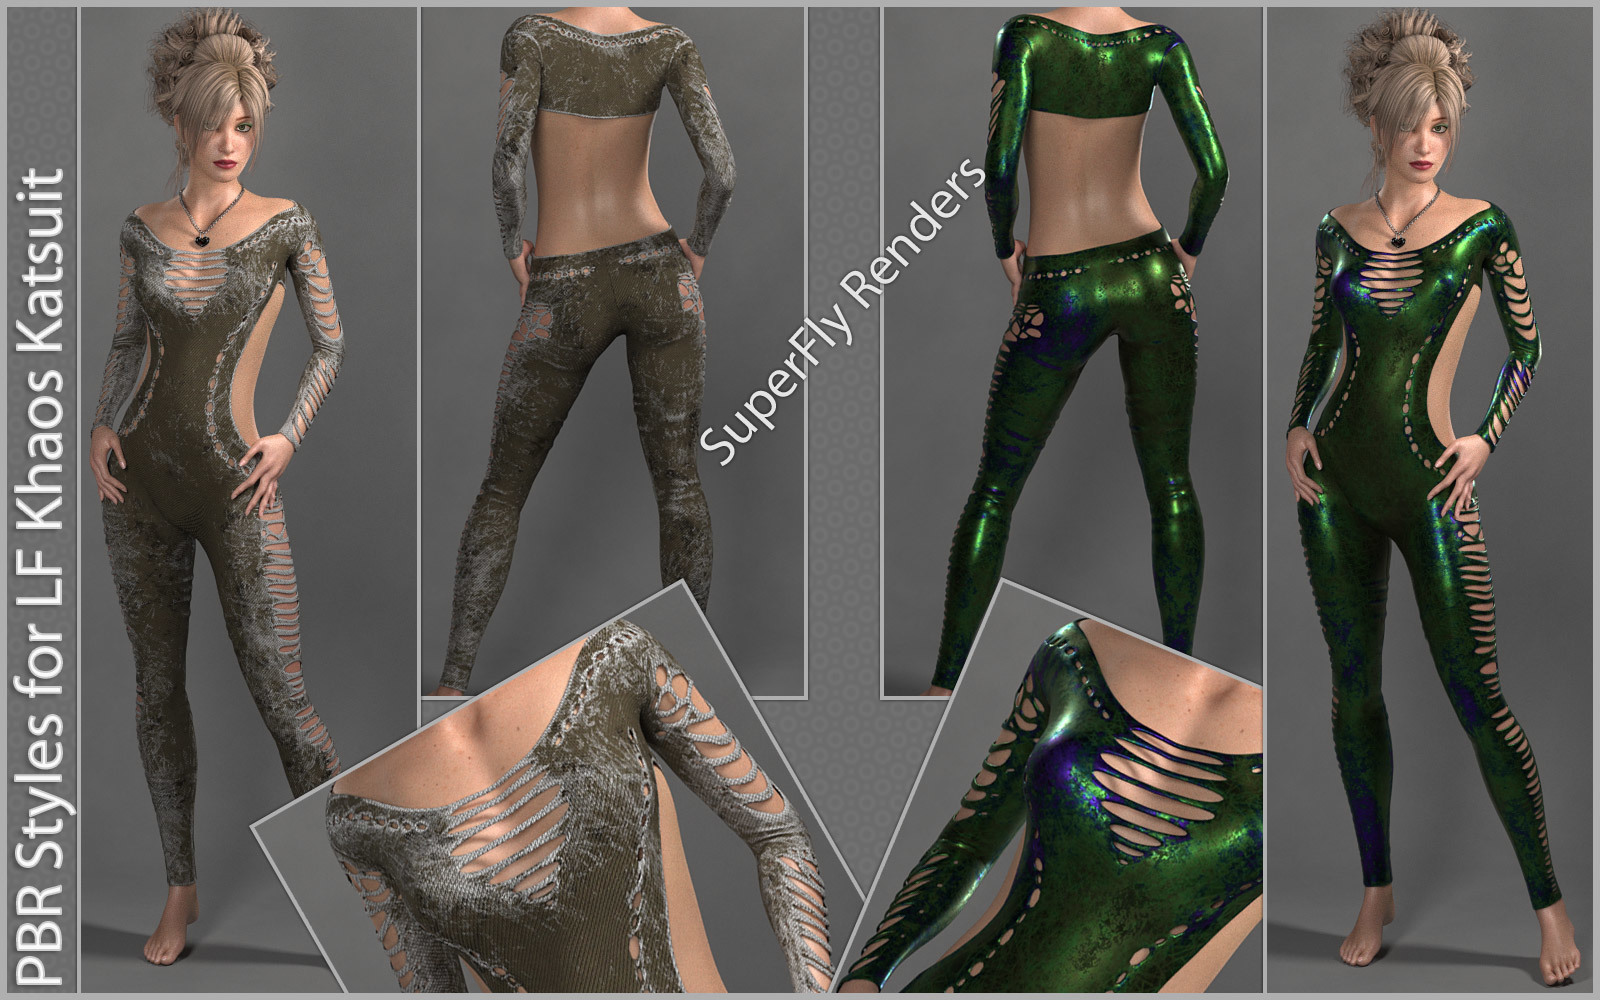 PBR Styles for LF NyX Khaos Katsuit by karanta